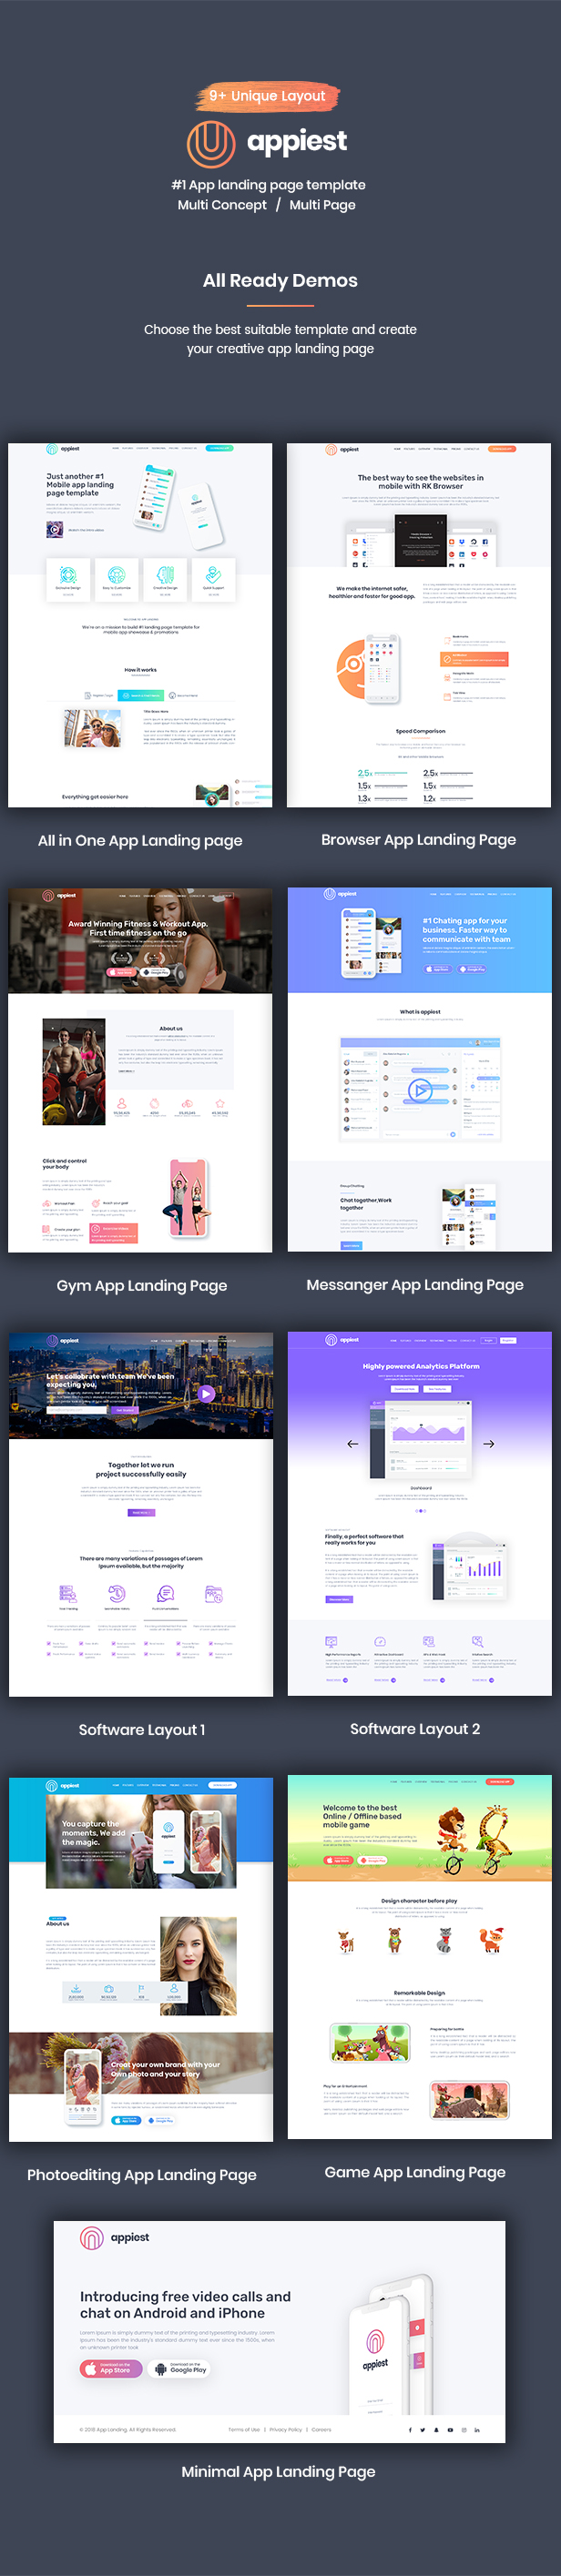 Appiest - MultiConcept App Landing Page HTML - 1